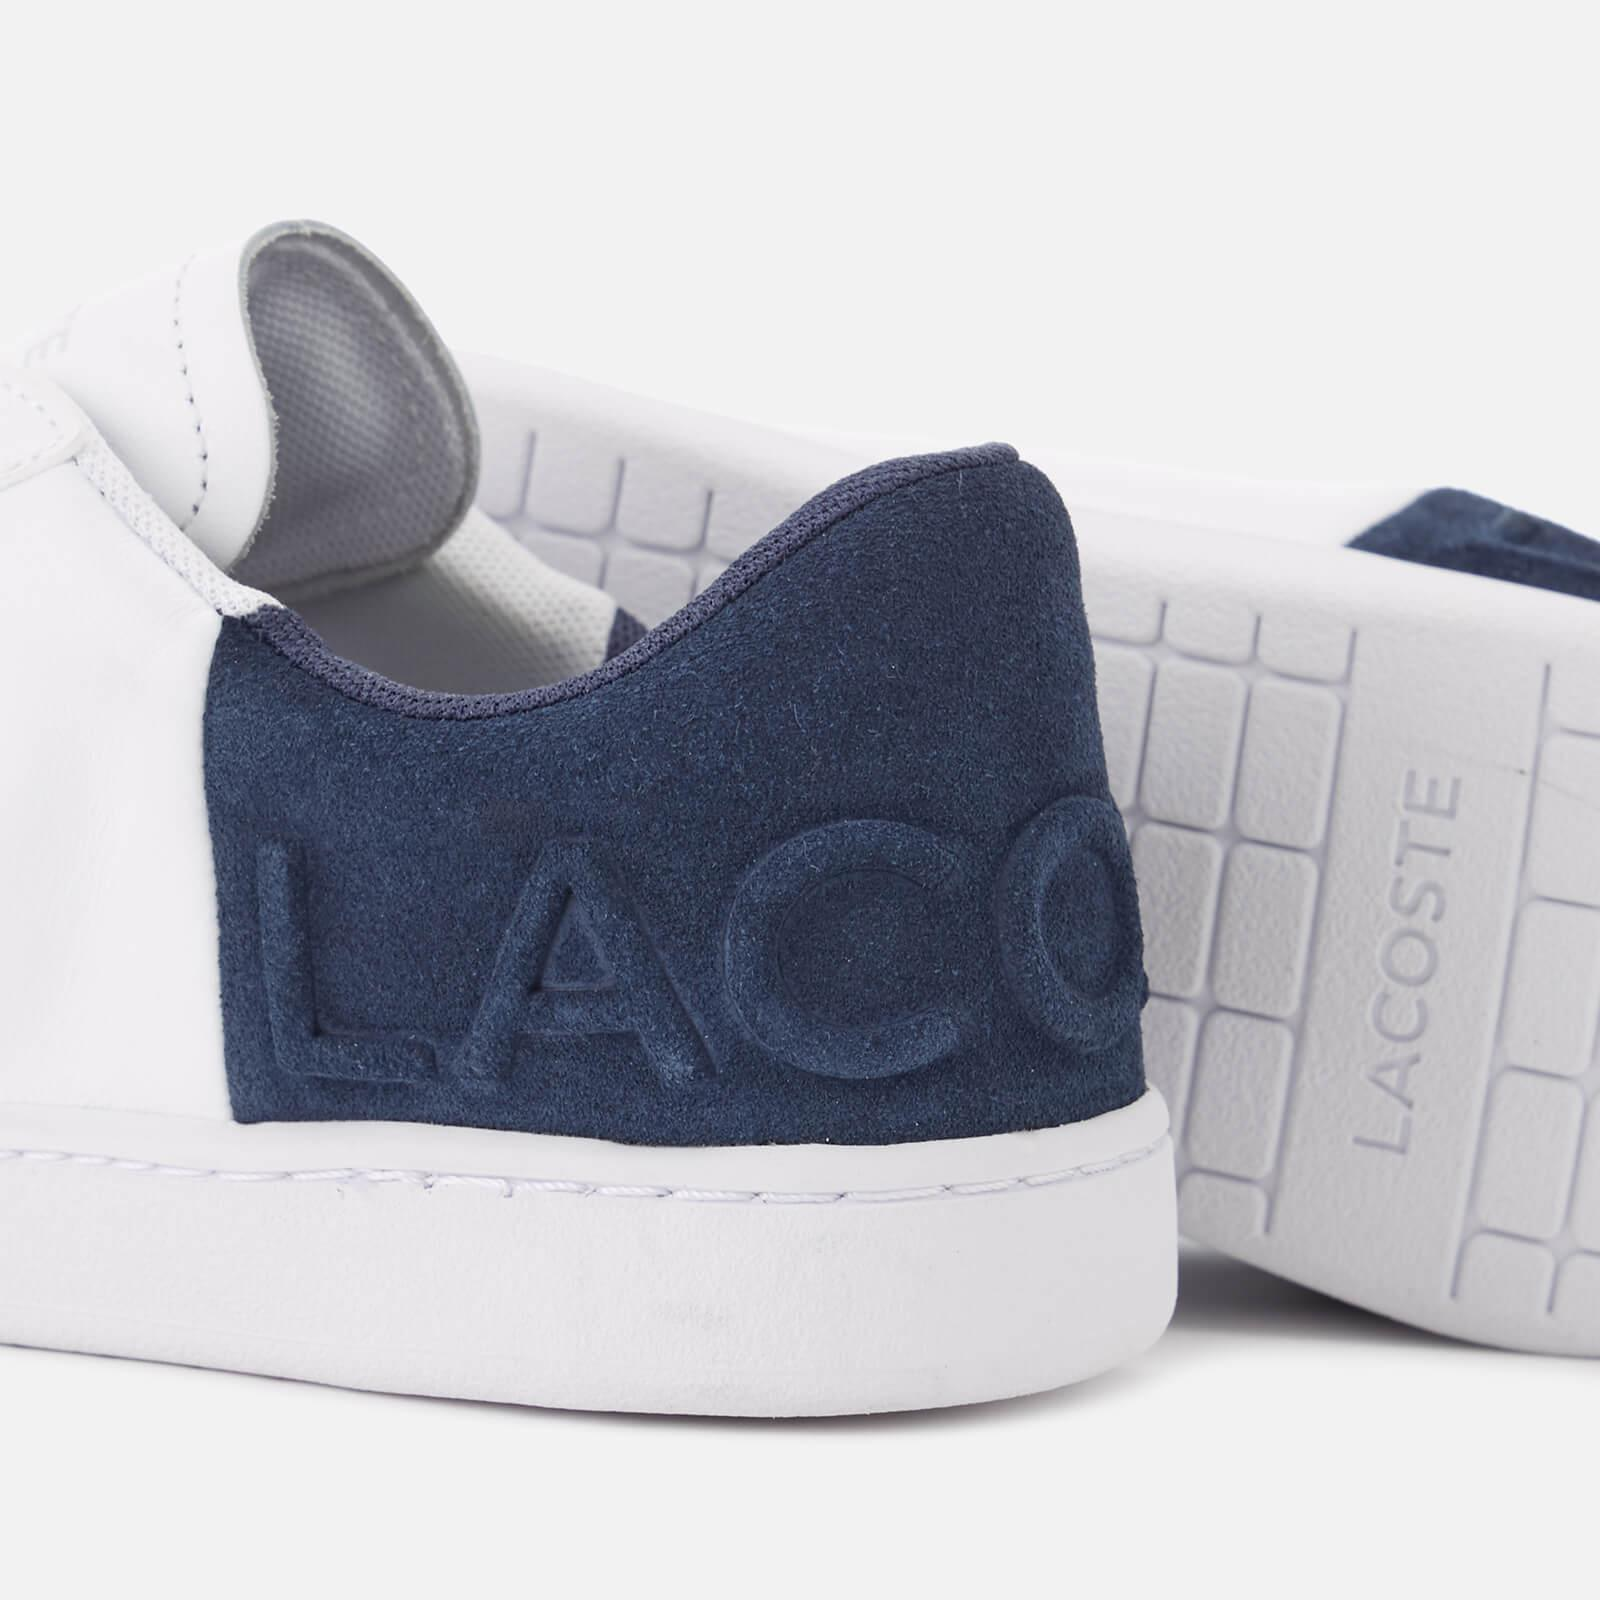 b0720d8aabd9c2 Lyst - Lacoste Carnaby Evo 318 3 Leather suede Trainers in White